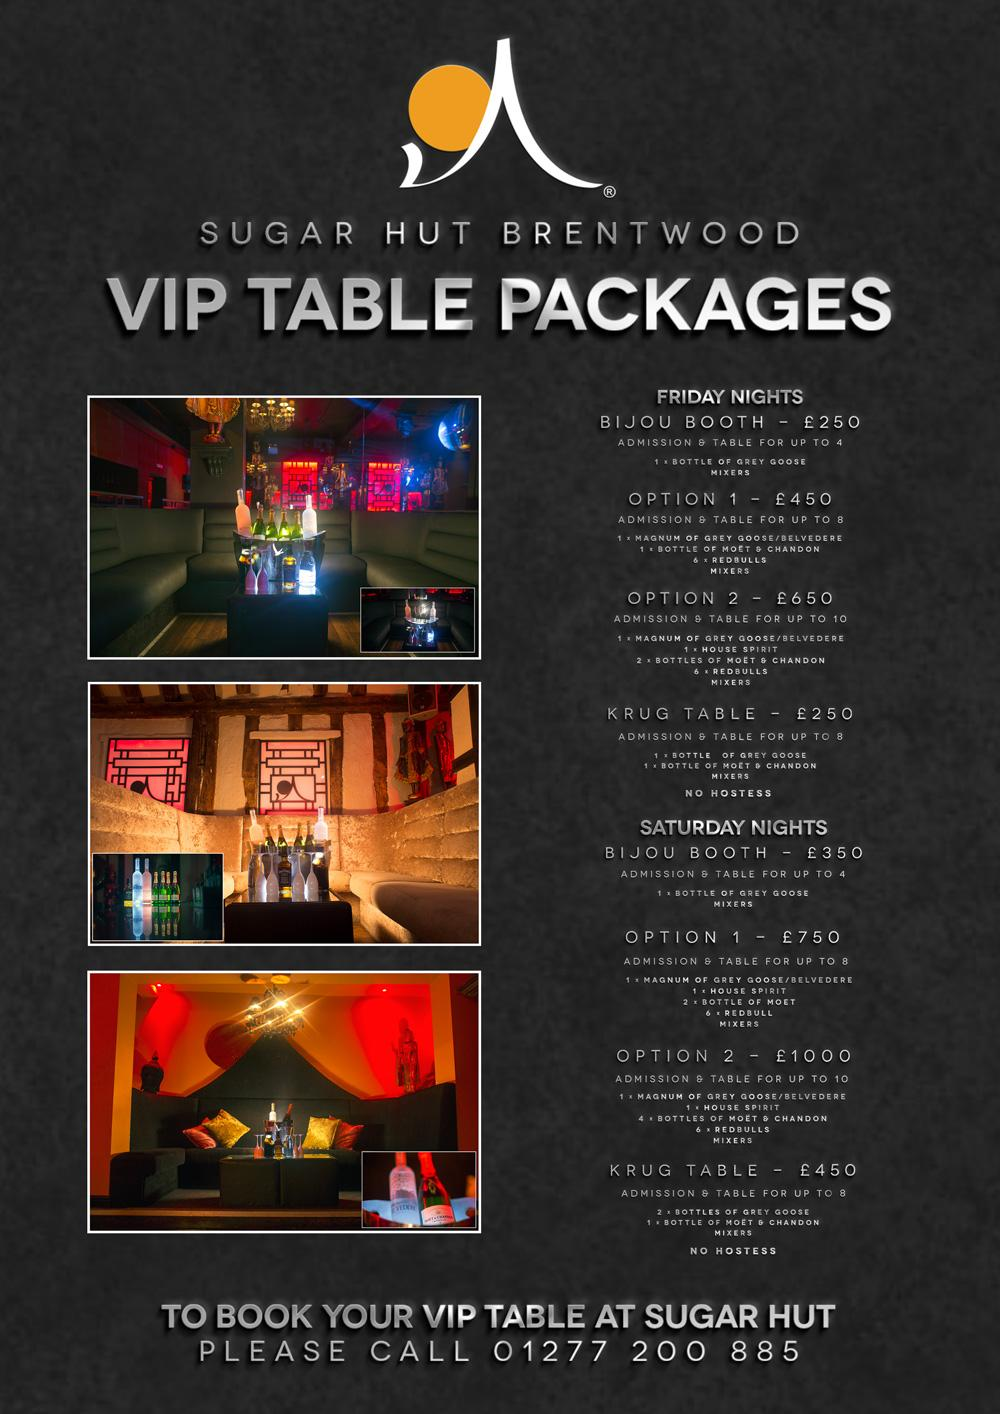 Book your table now for this weekend ... Call us on 01277 200885 http://t.co/rjWEx4u2Bj